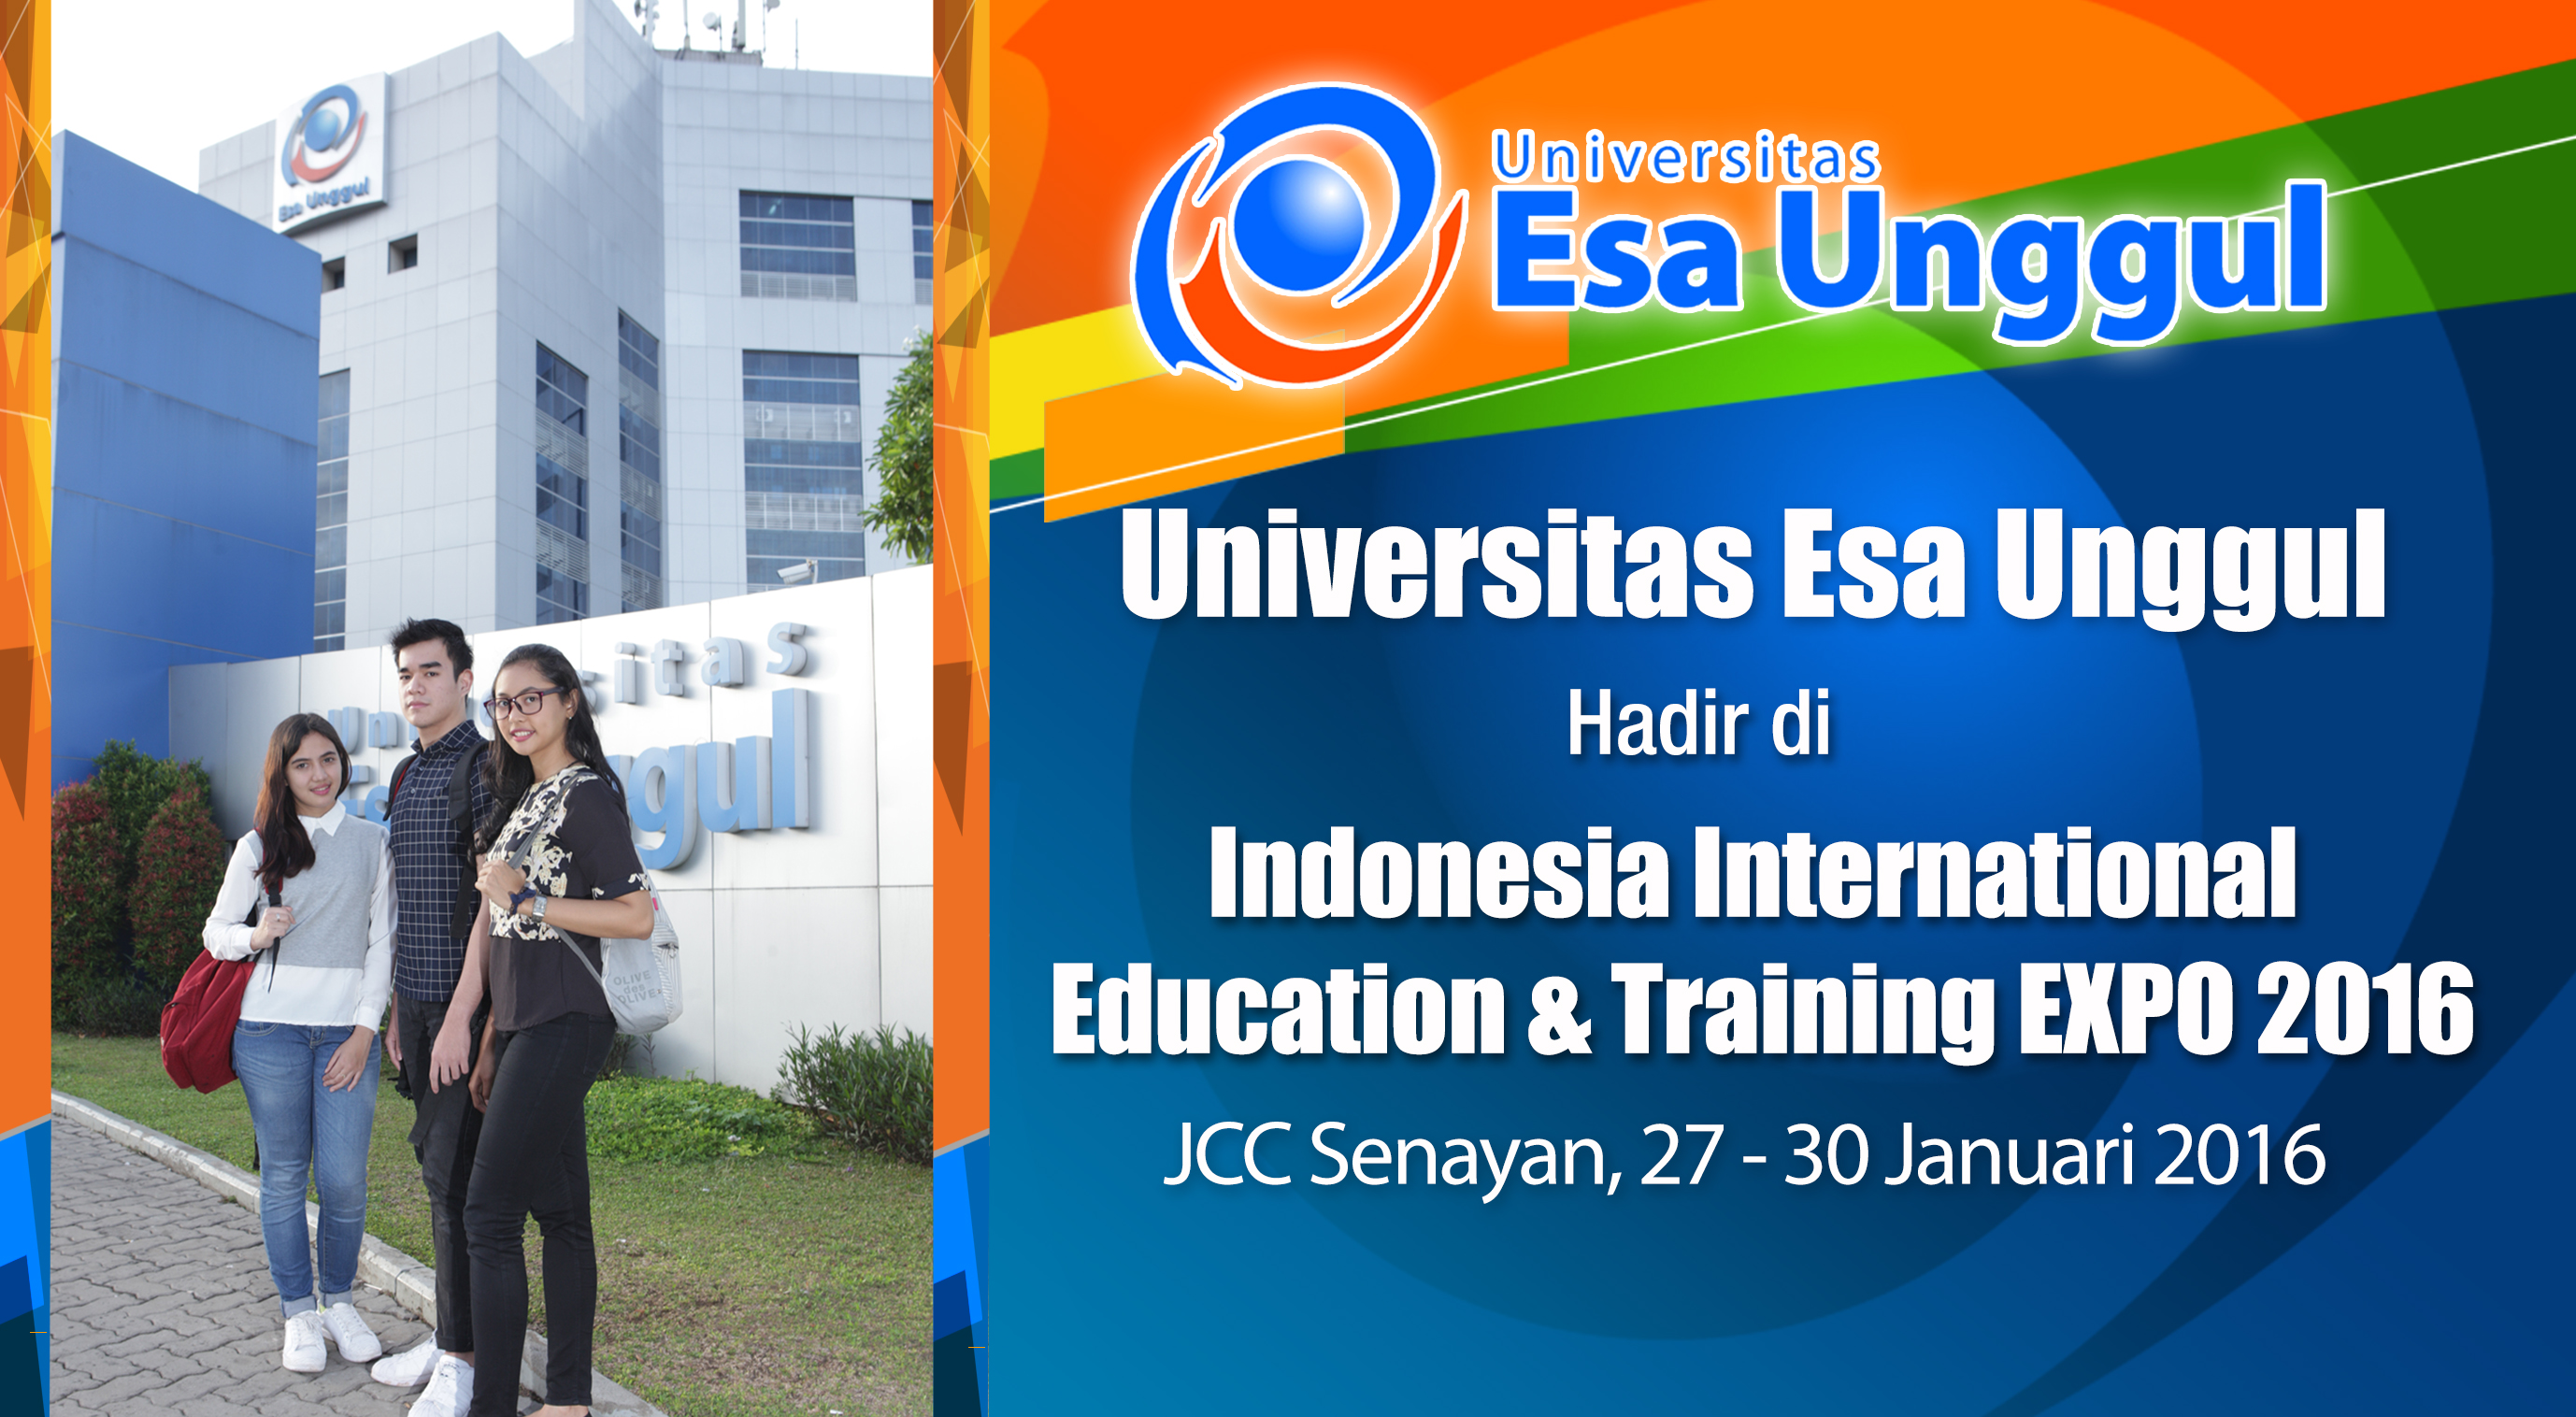 Universitas Esa Unggul Hadir Di Indonesia International Education & Training EXPO 2016